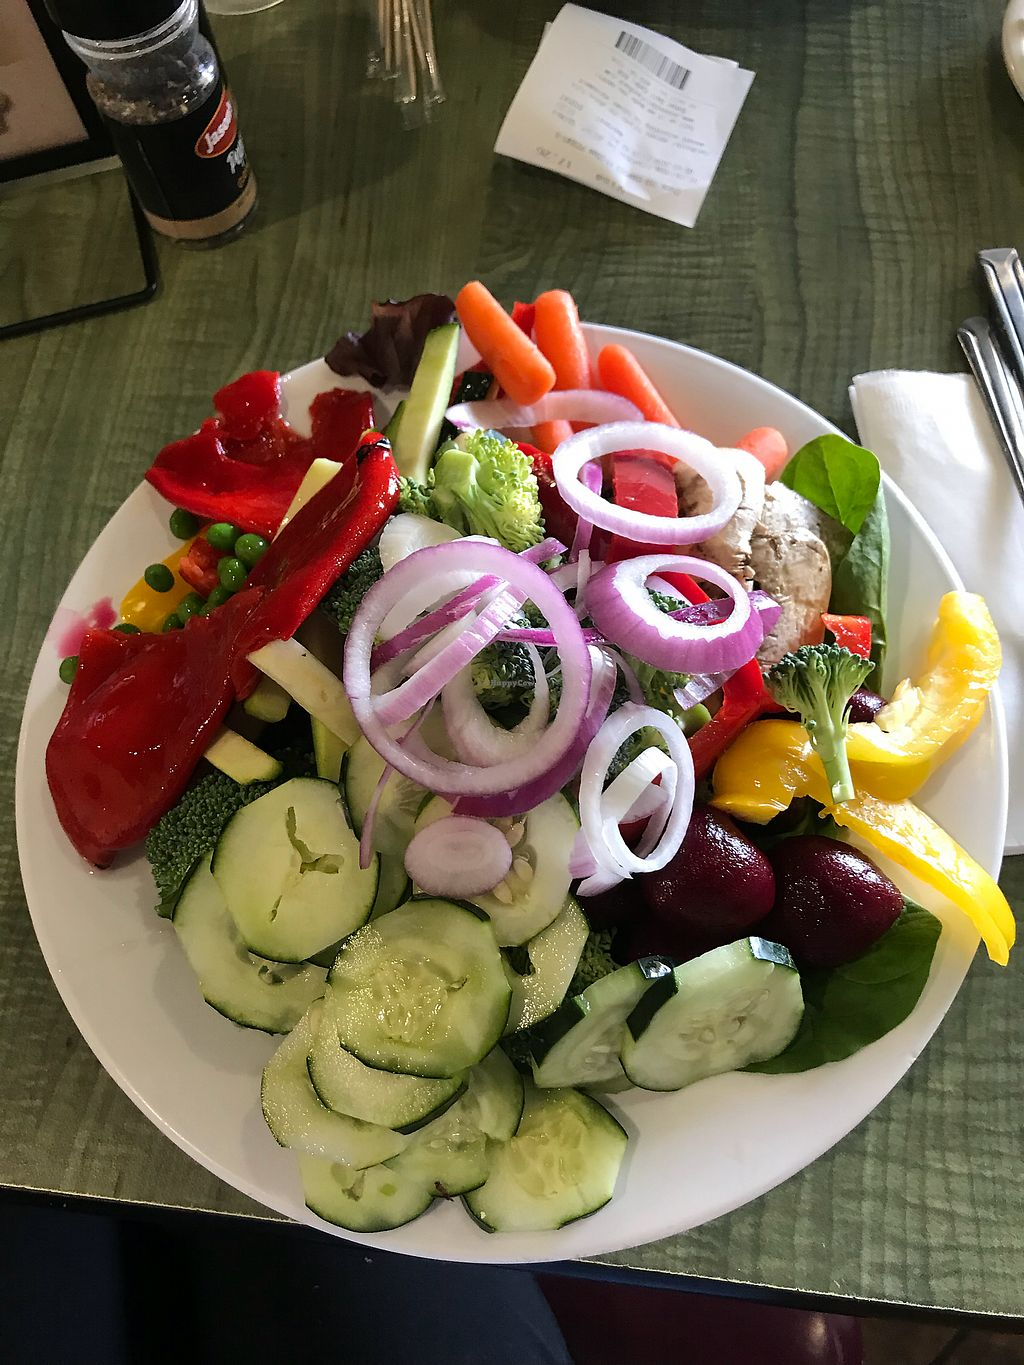 """Photo of Jason's Deli  by <a href=""""/members/profile/ashlinmichelle7"""">ashlinmichelle7</a> <br/>Yummy <br/> May 3, 2018  - <a href='/contact/abuse/image/36242/394579'>Report</a>"""